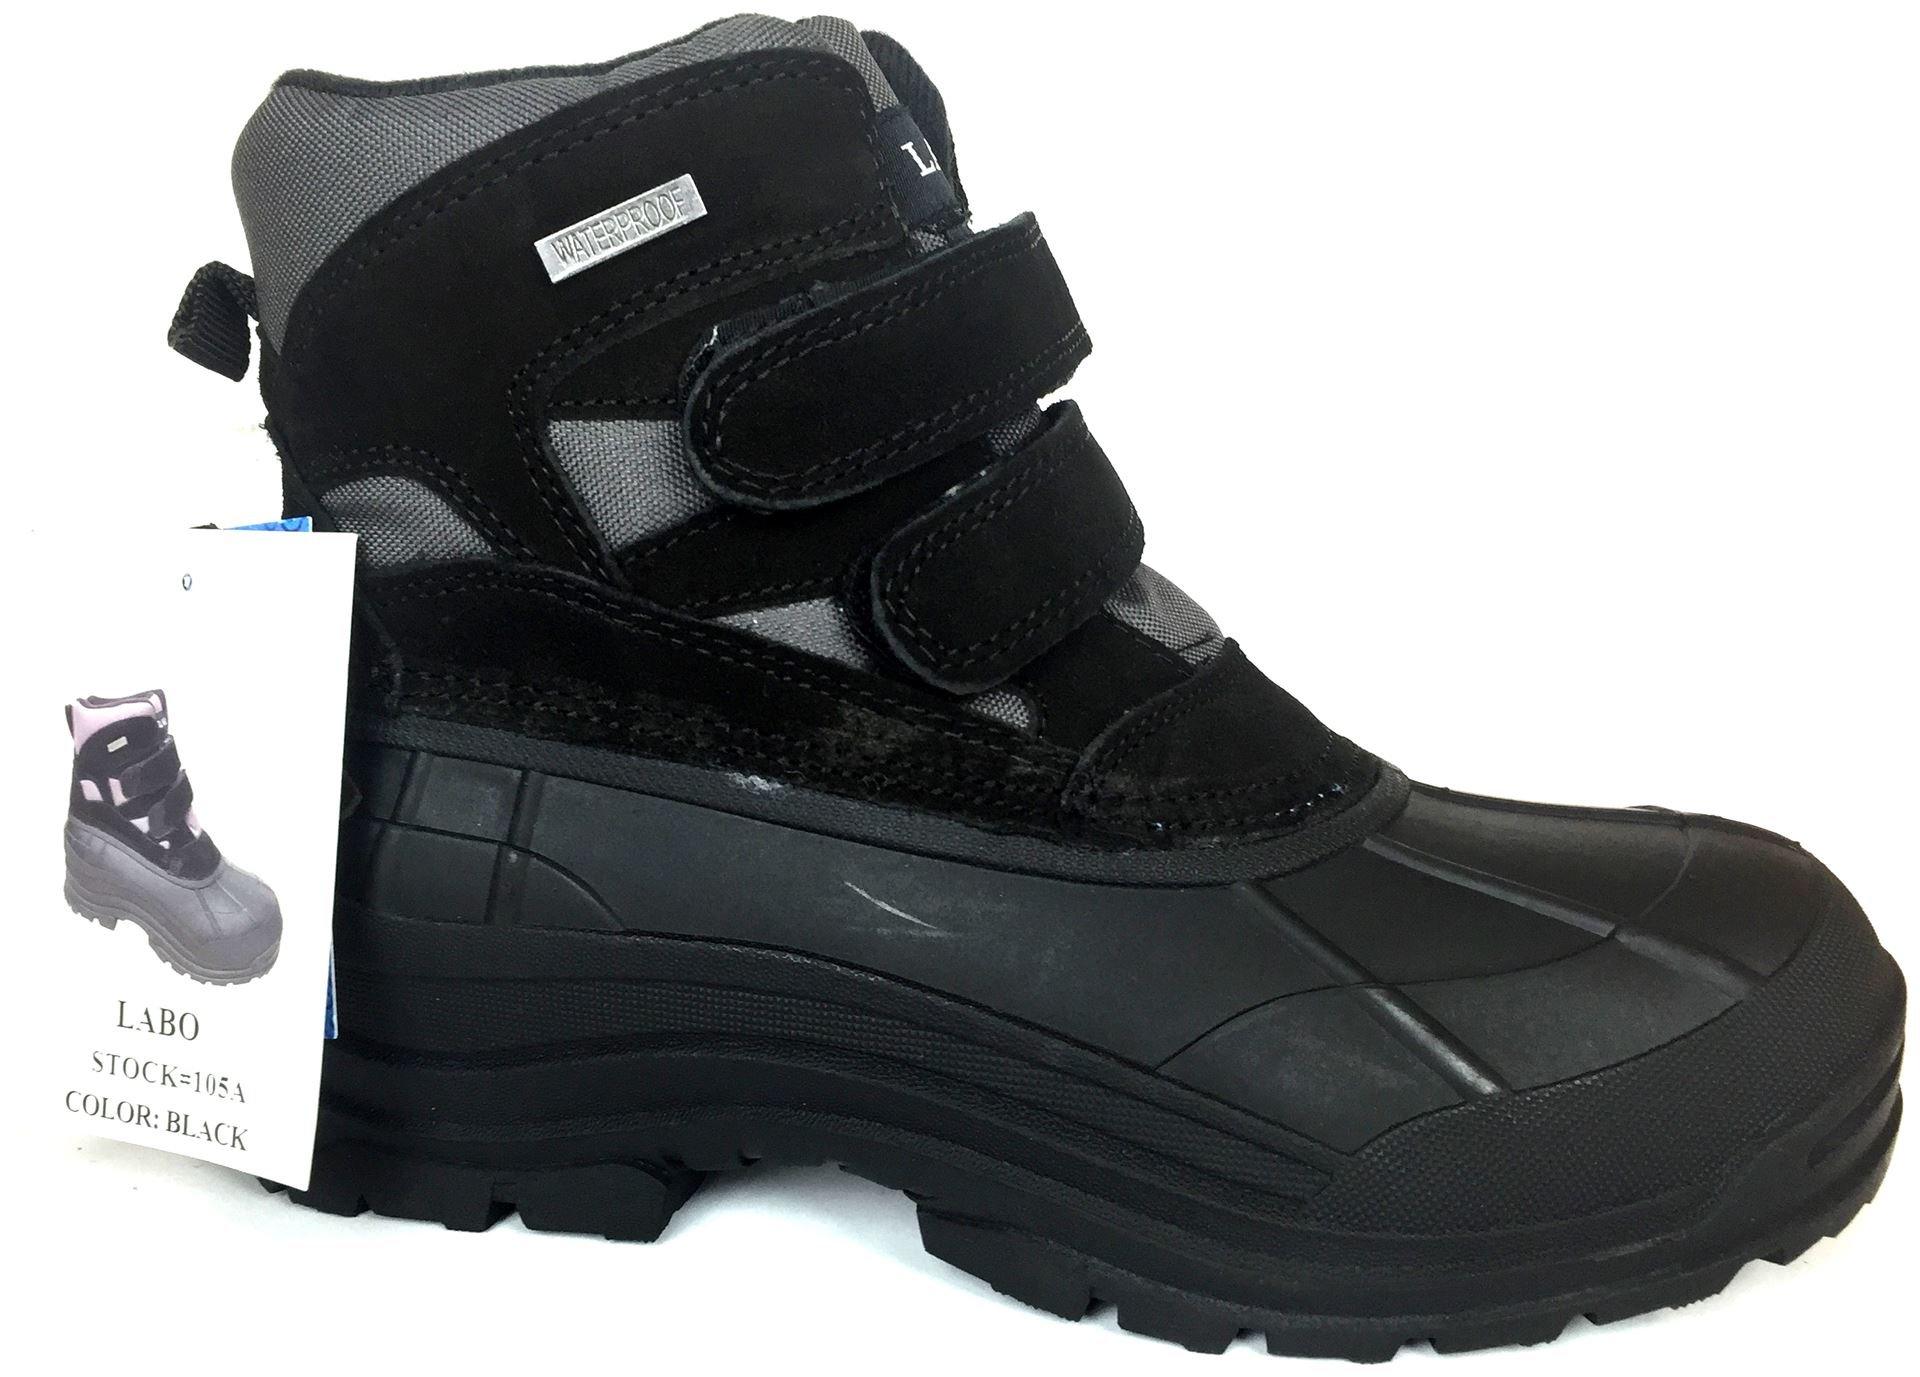 6'' Duck Snow Boot Black Color Size 105A- 11.5